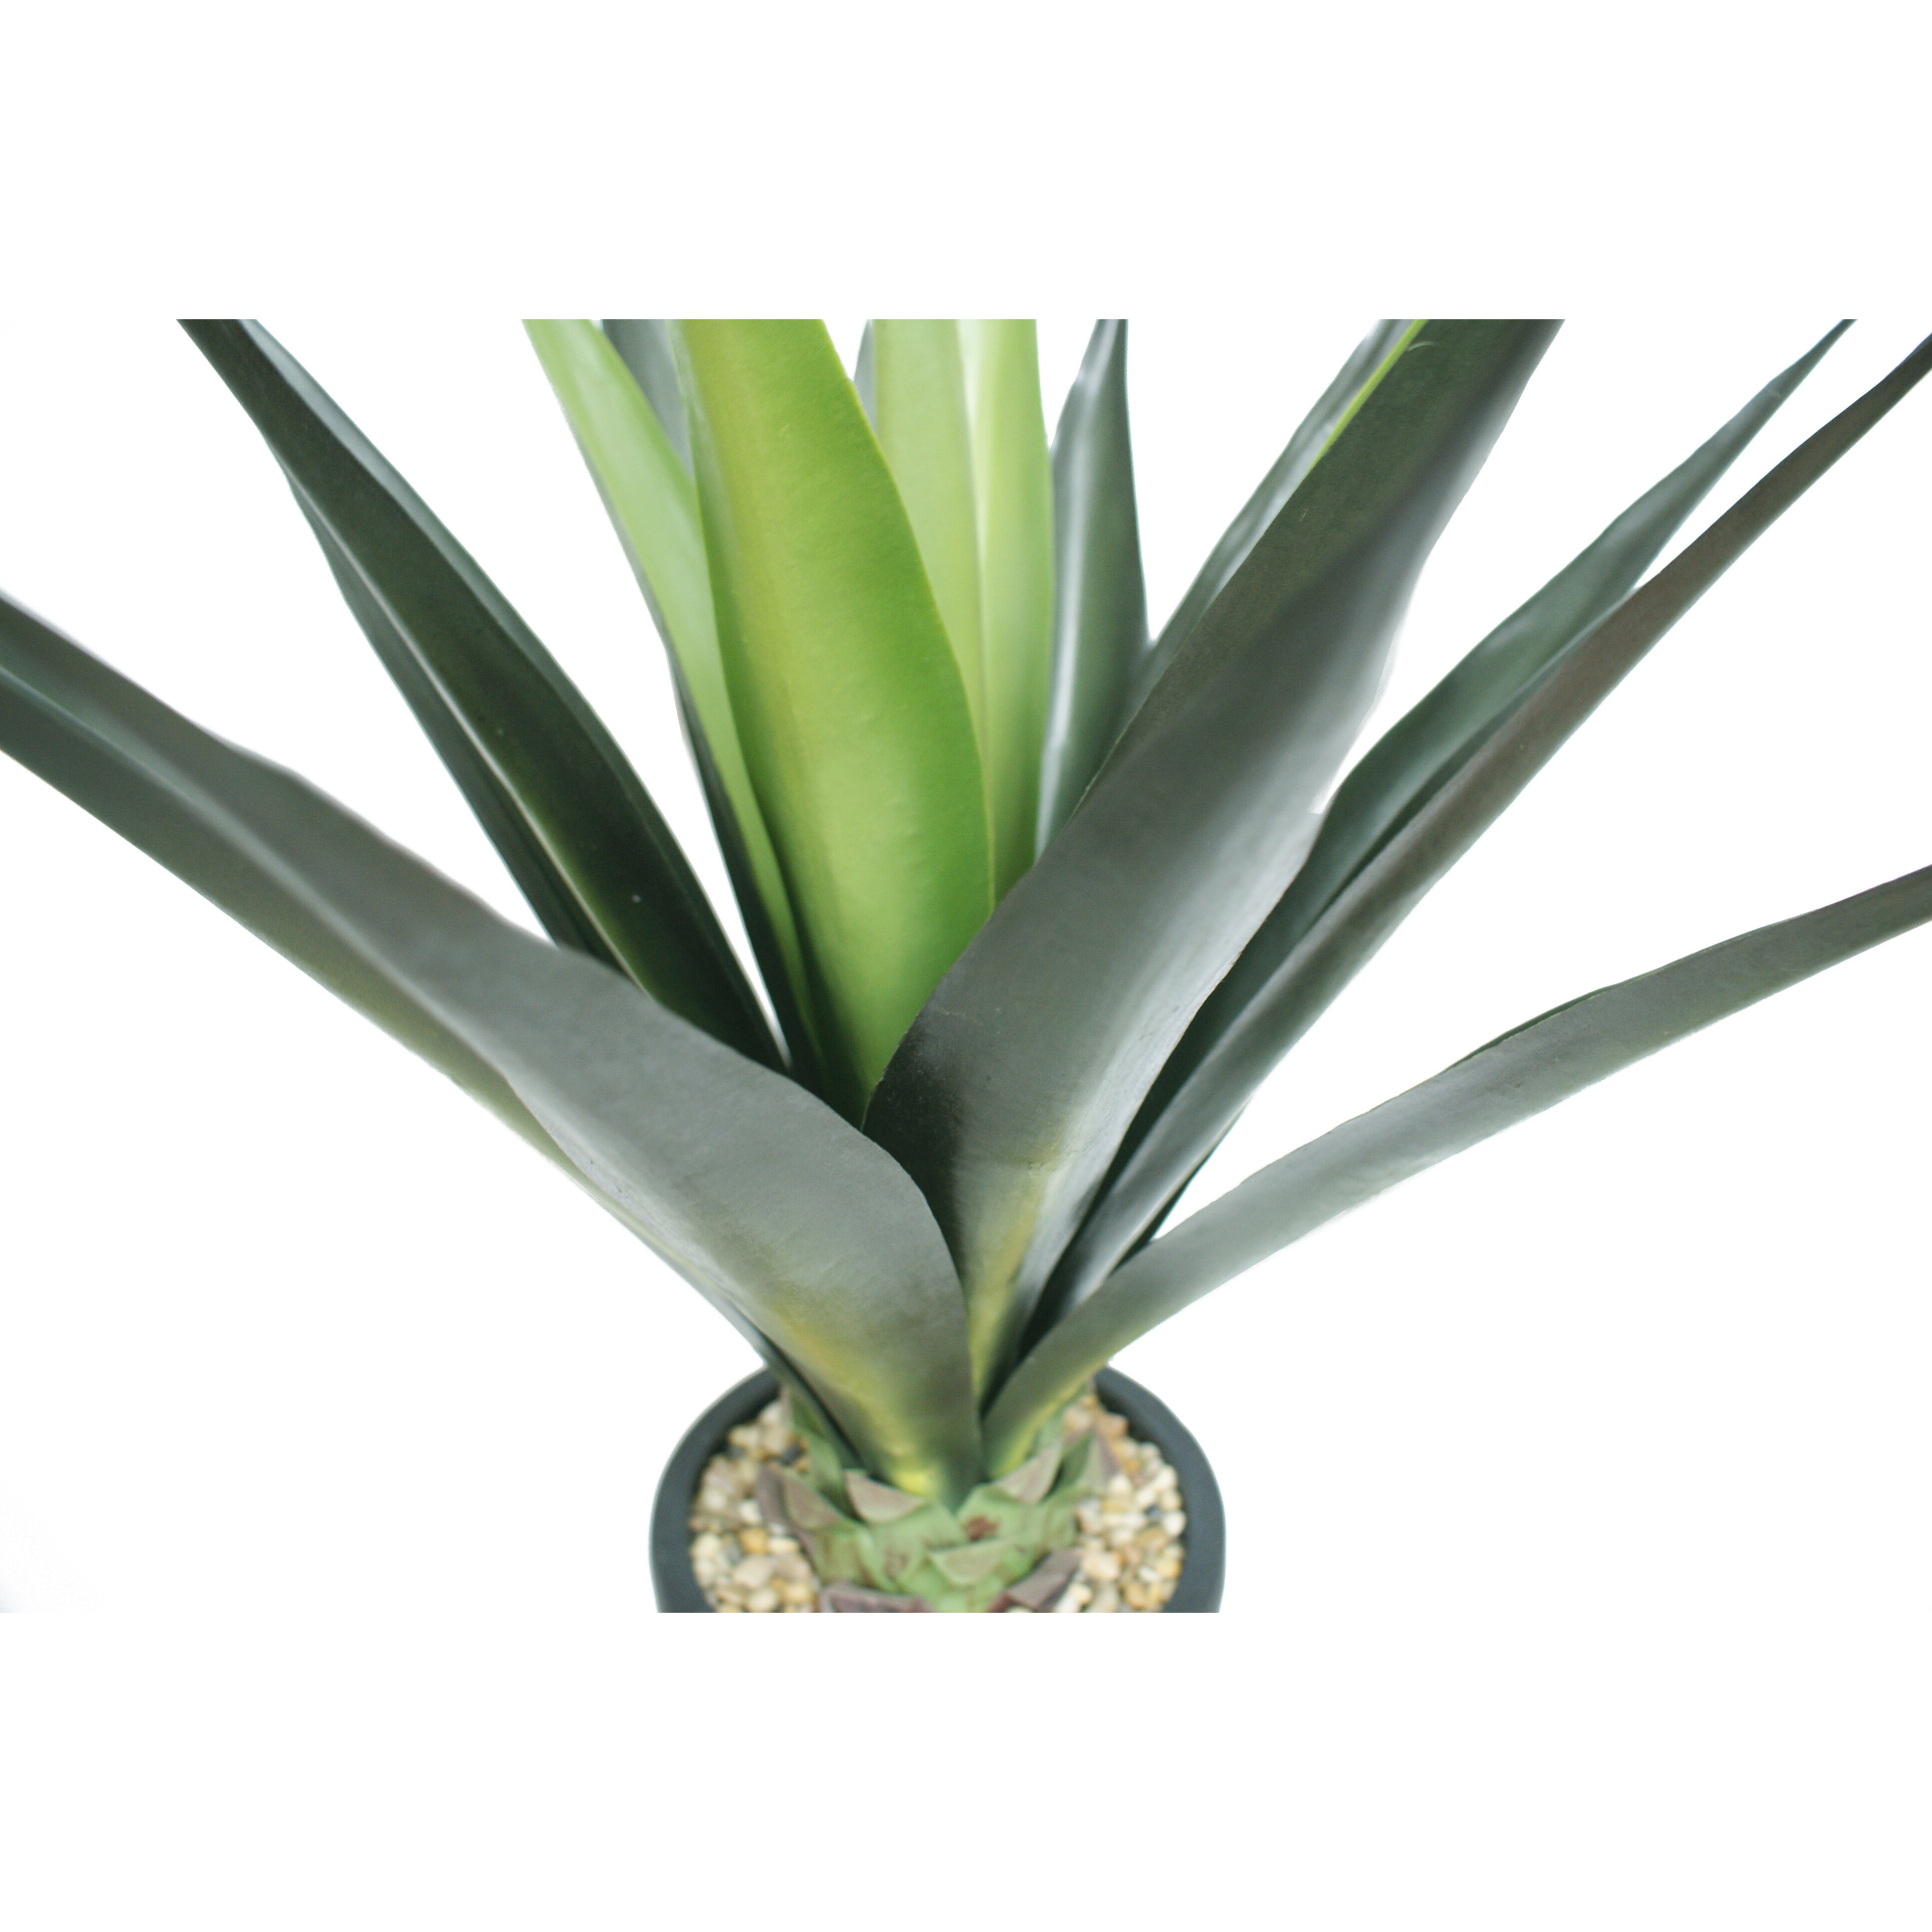 Laura ashley home tall high end giant aloe floor plant in planter